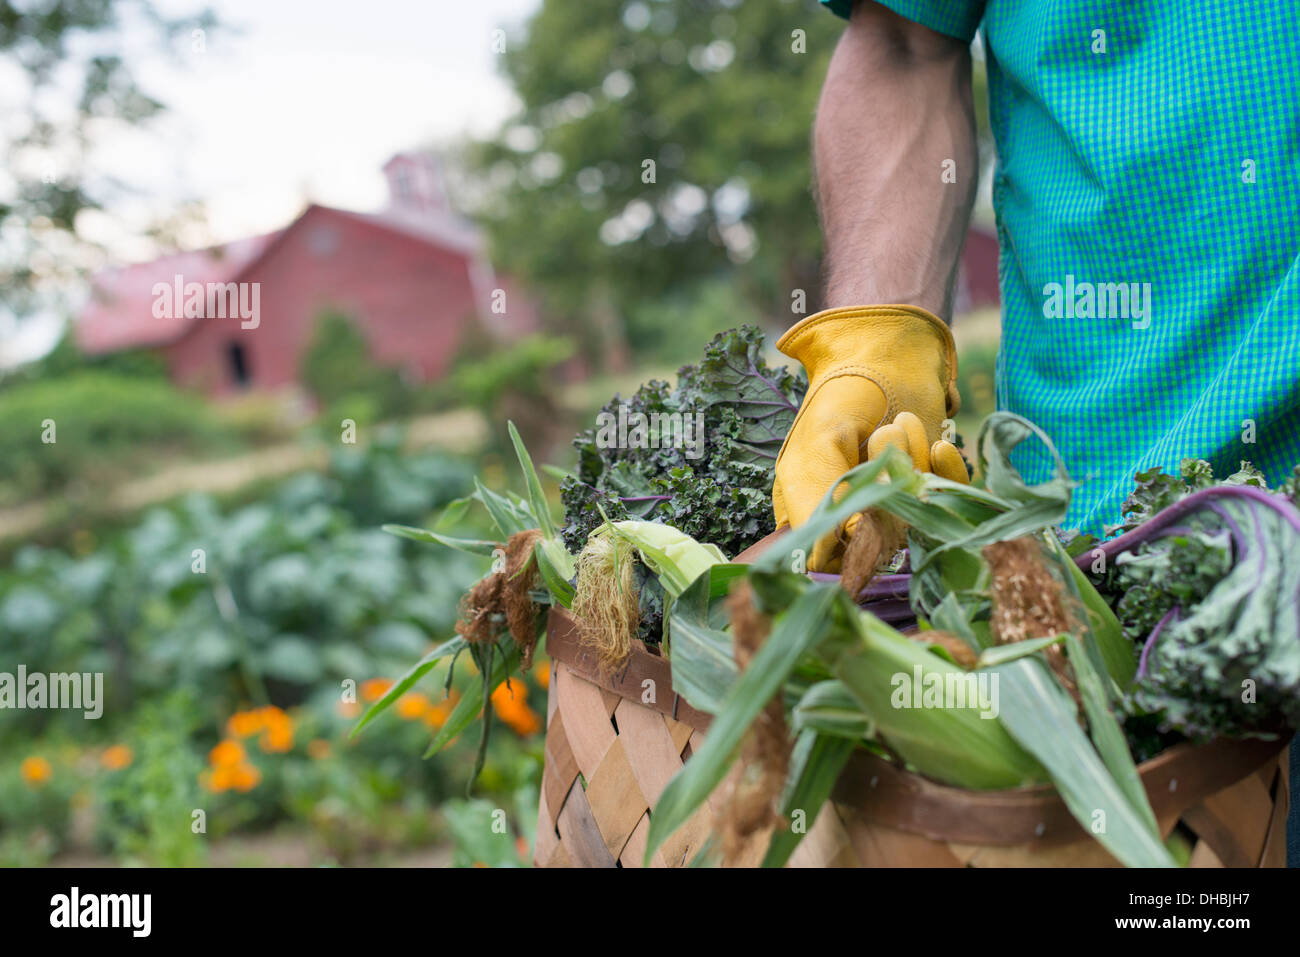 An organic vegetable garden on a farm. A man carrying a basket of freshly harvested corn on the cob. - Stock Image